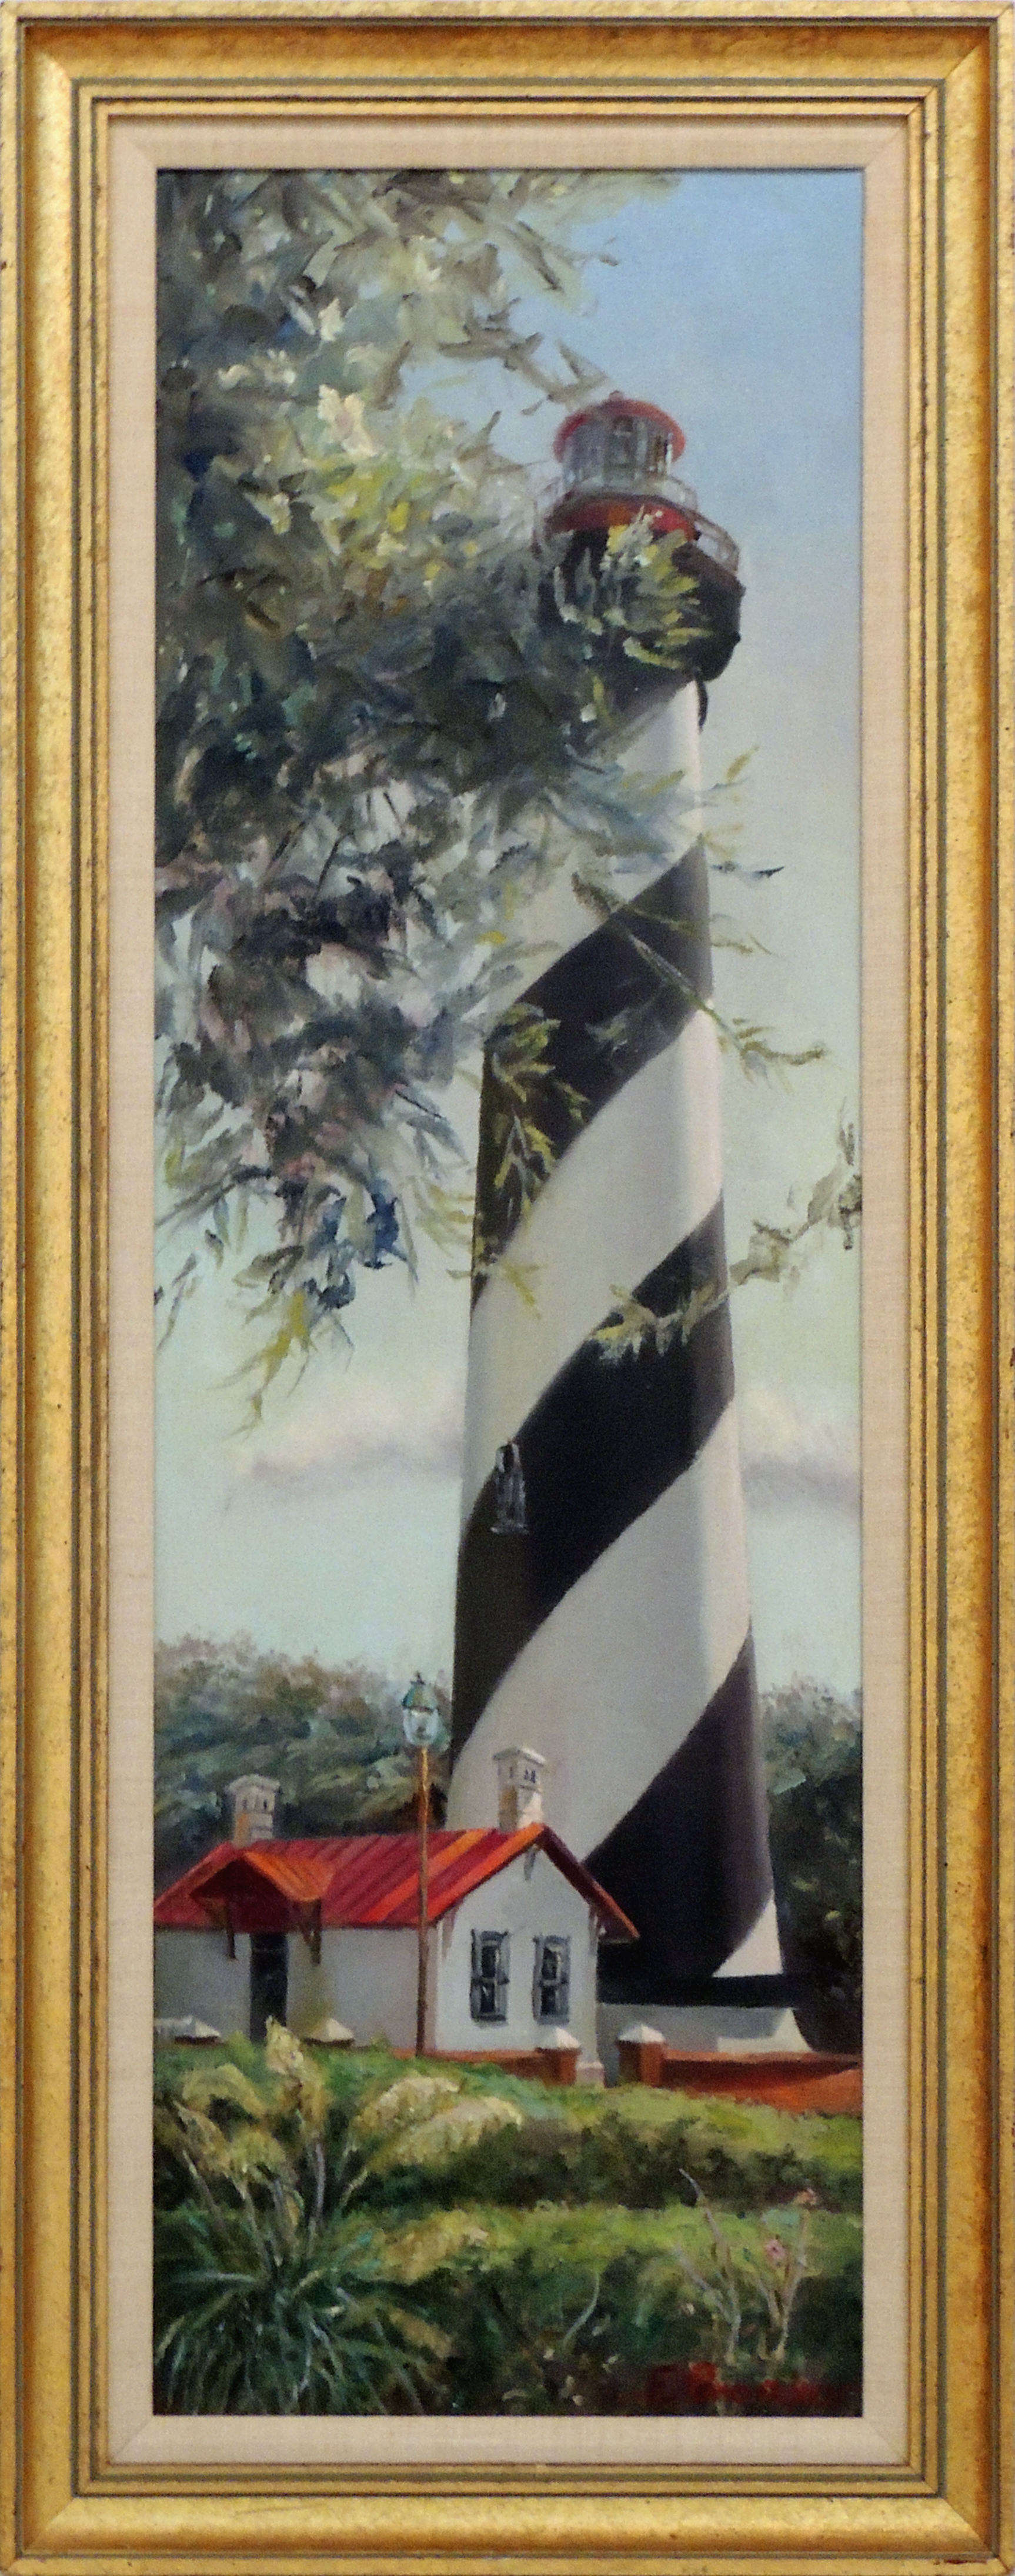 Eunice Bronkar | ST. AUG. LIGHTHOUSE | oil